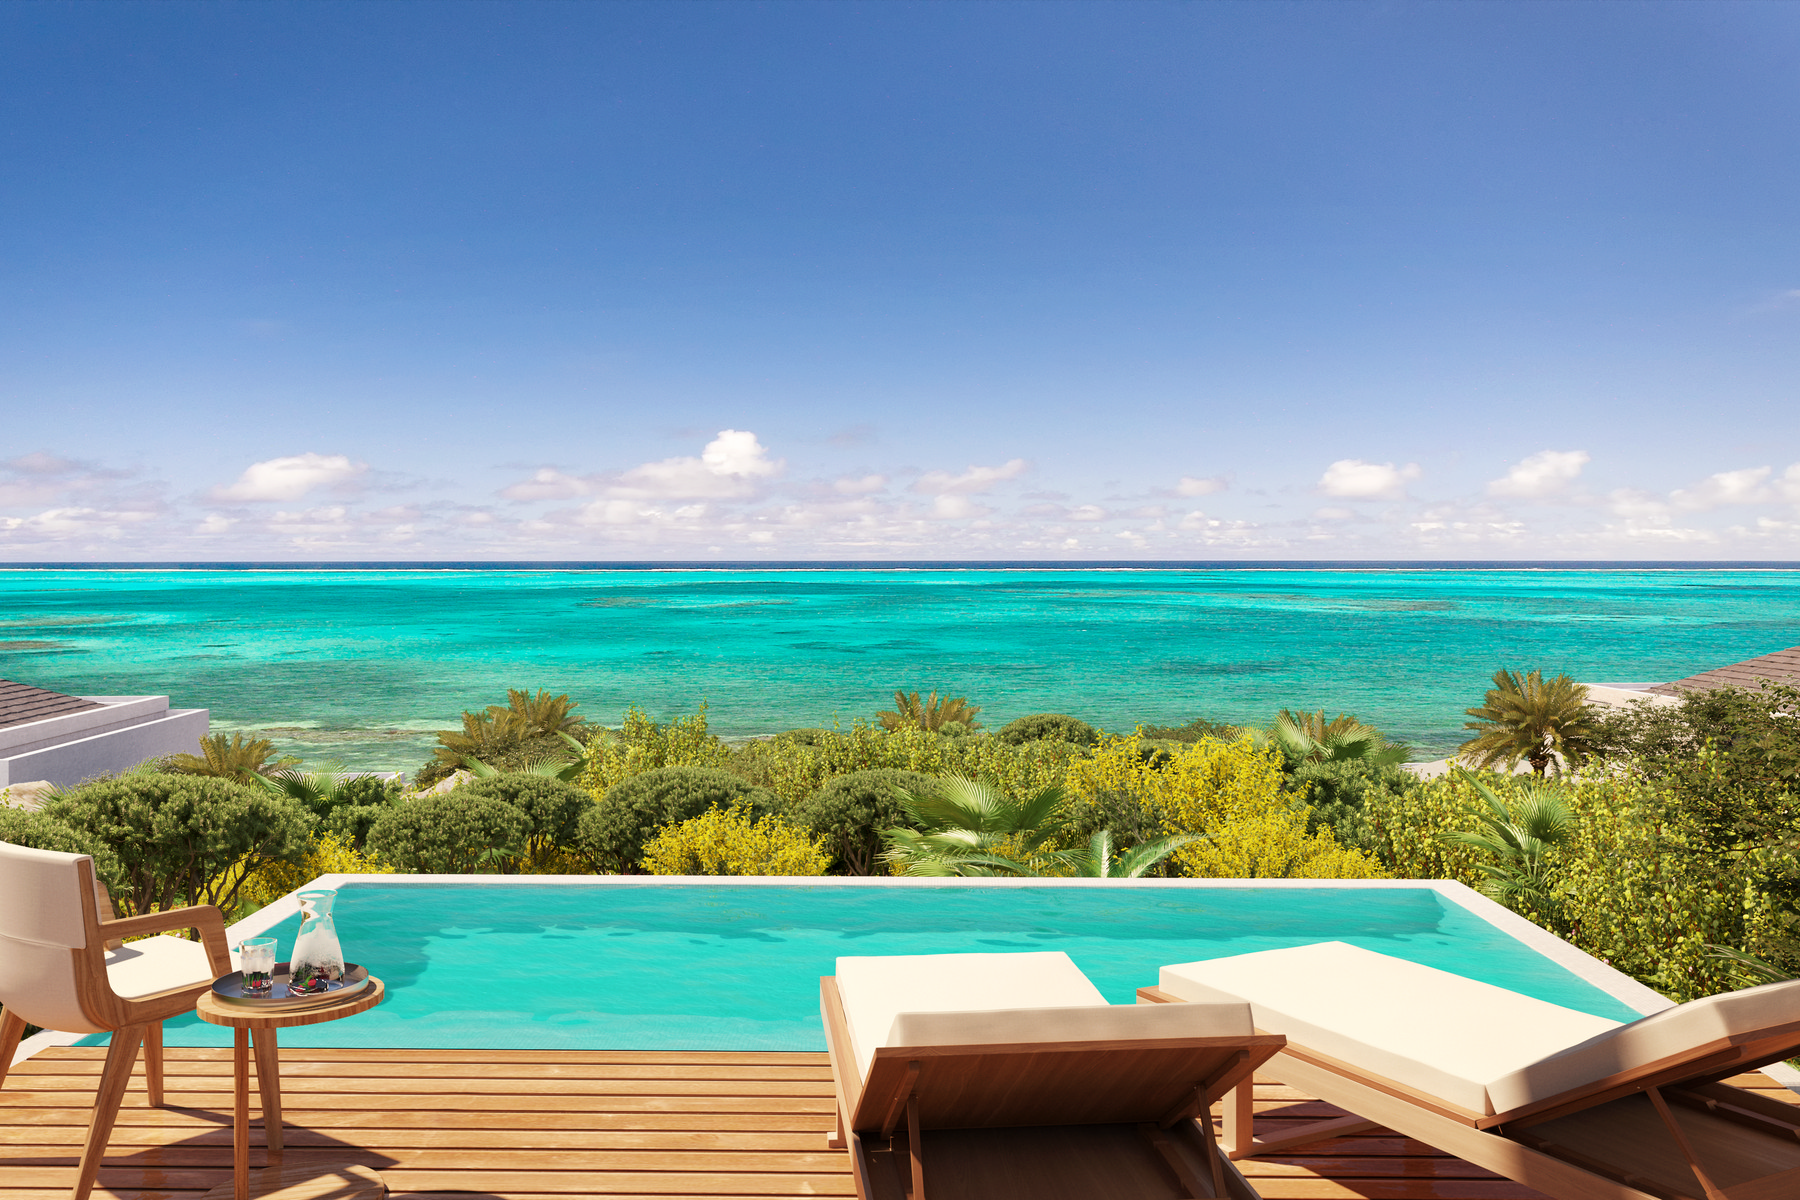 Casa Unifamiliar por un Venta en Rock House Two Bedroom Ridgetop Rock House Resort, International Drive Blue Mountain, Providenciales TKCA 1ZZ Islas Turcas Y Caicos